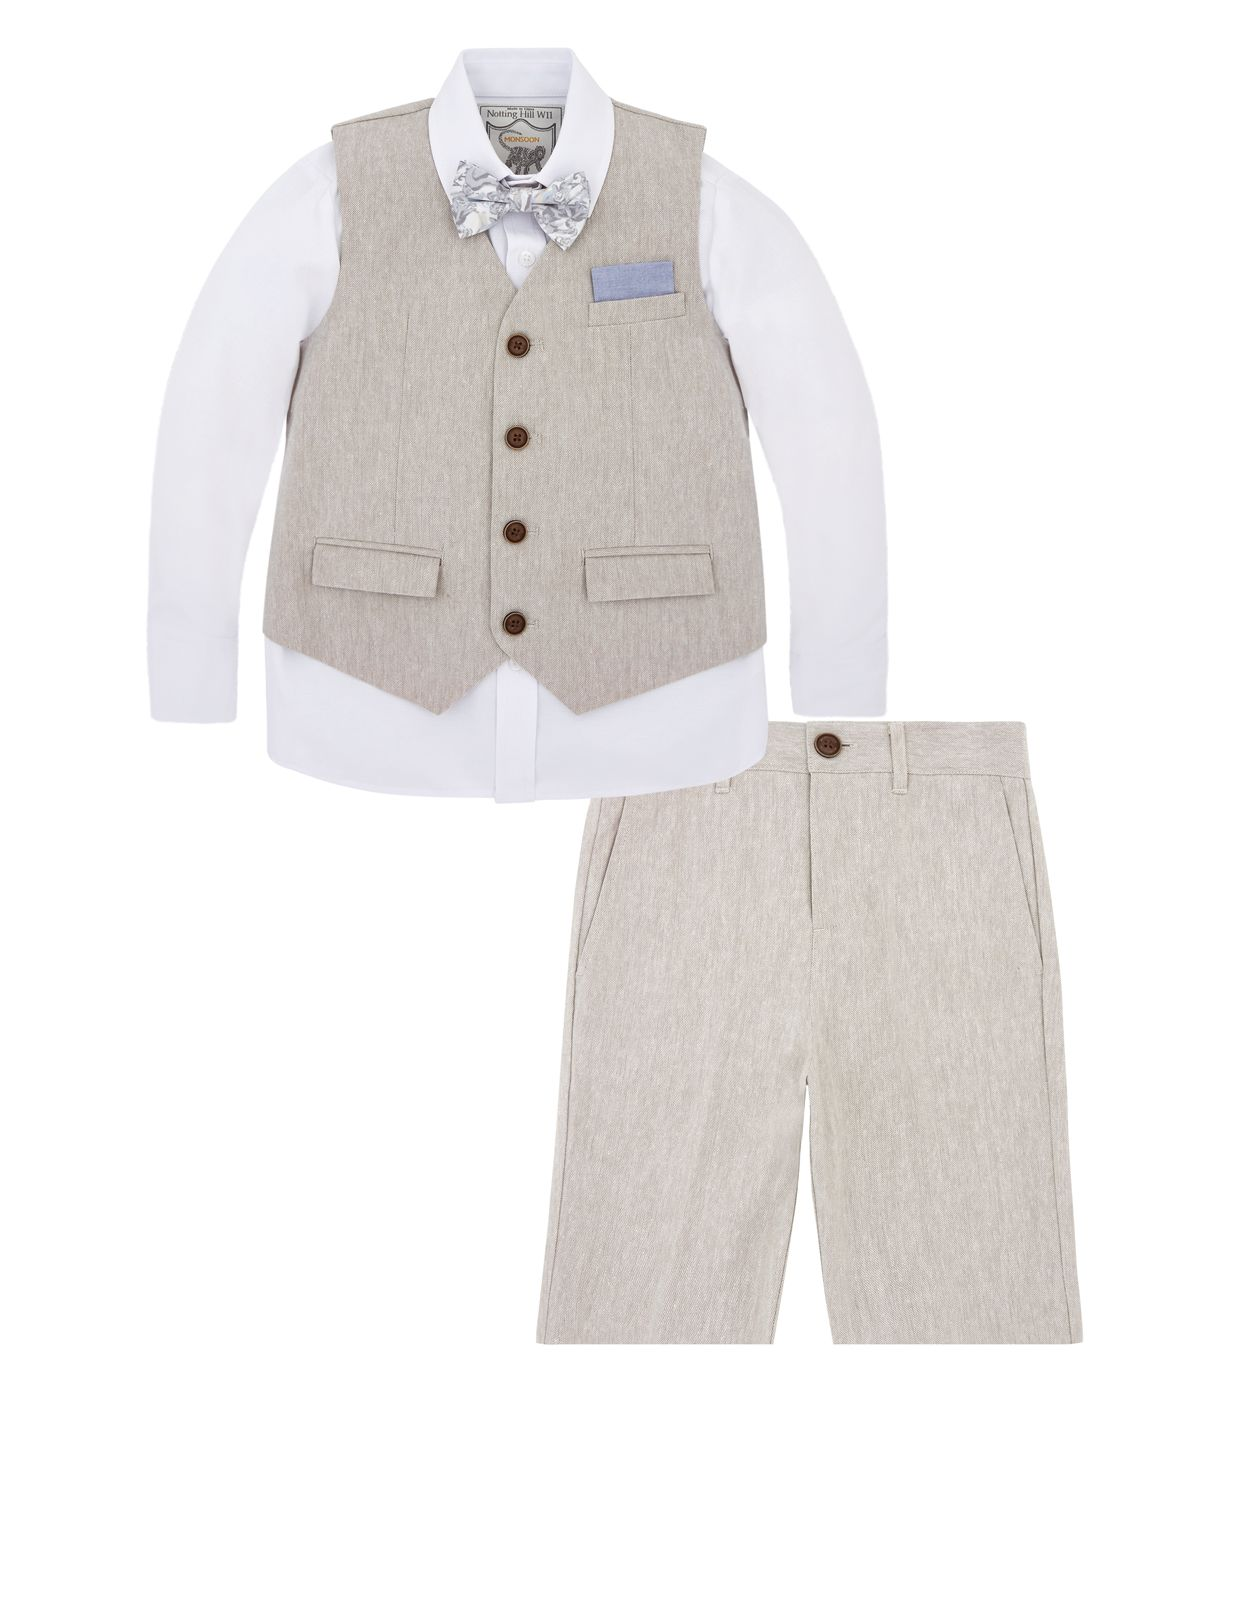 b4272fd2f Our Lee four-piece suit for boys is perfect for warm weather ...